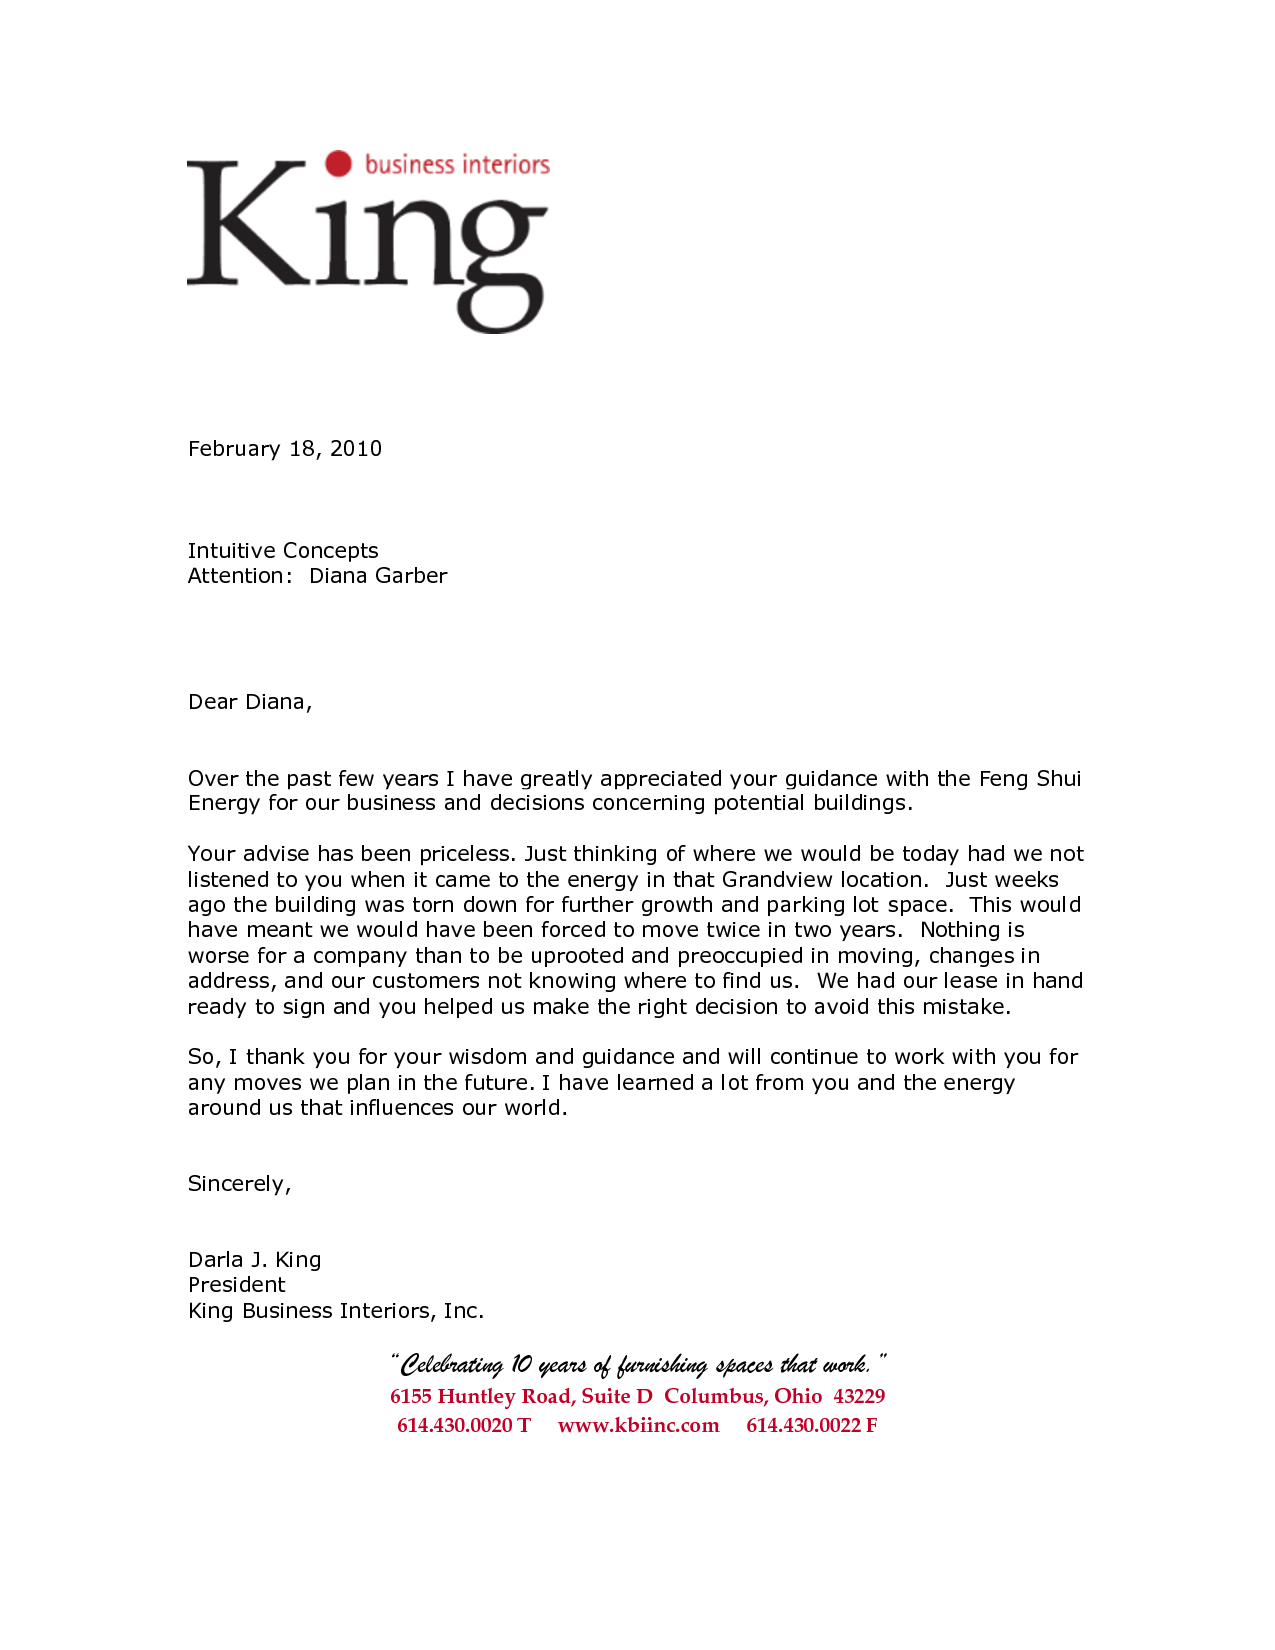 Business Letter of Reference Template | King Business ...